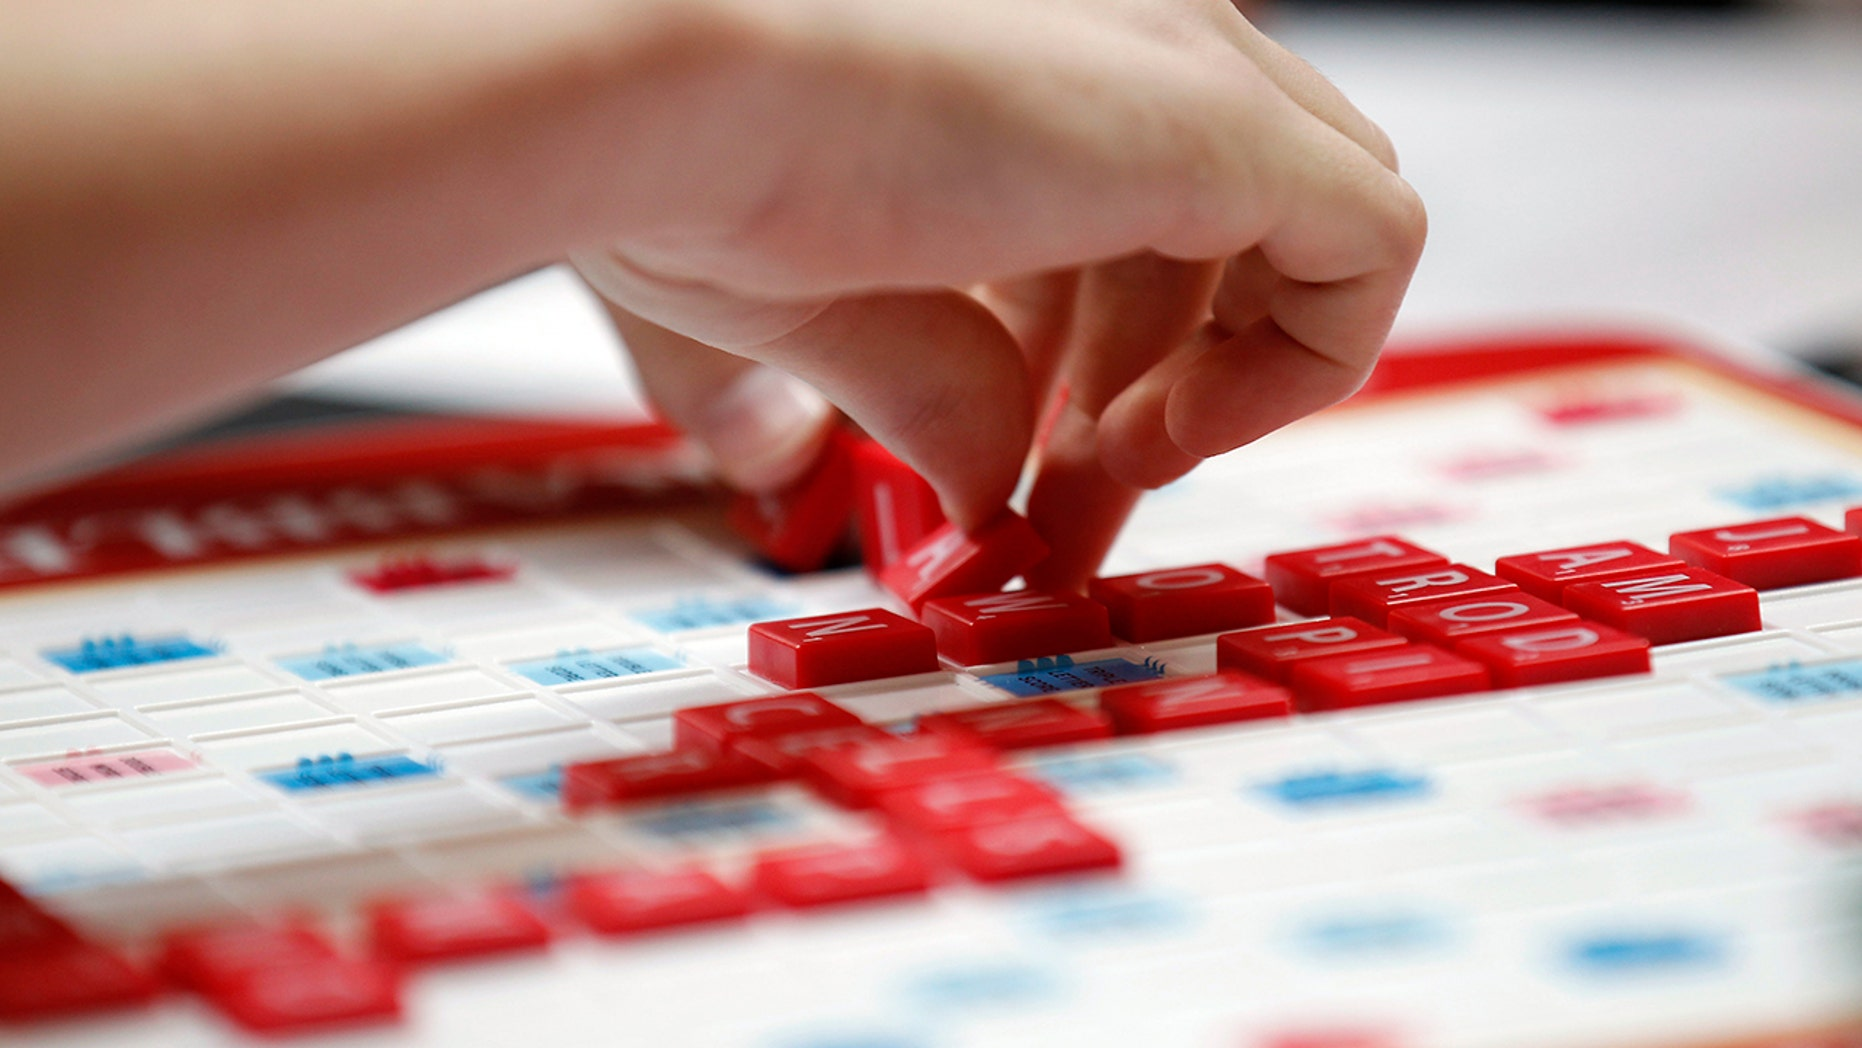 Merriam-Webster's latest edition of the Scrabble dictionary has 300 new additions, and thus 300 new ways for Grandma to completely bury you during a game of Scrabble.